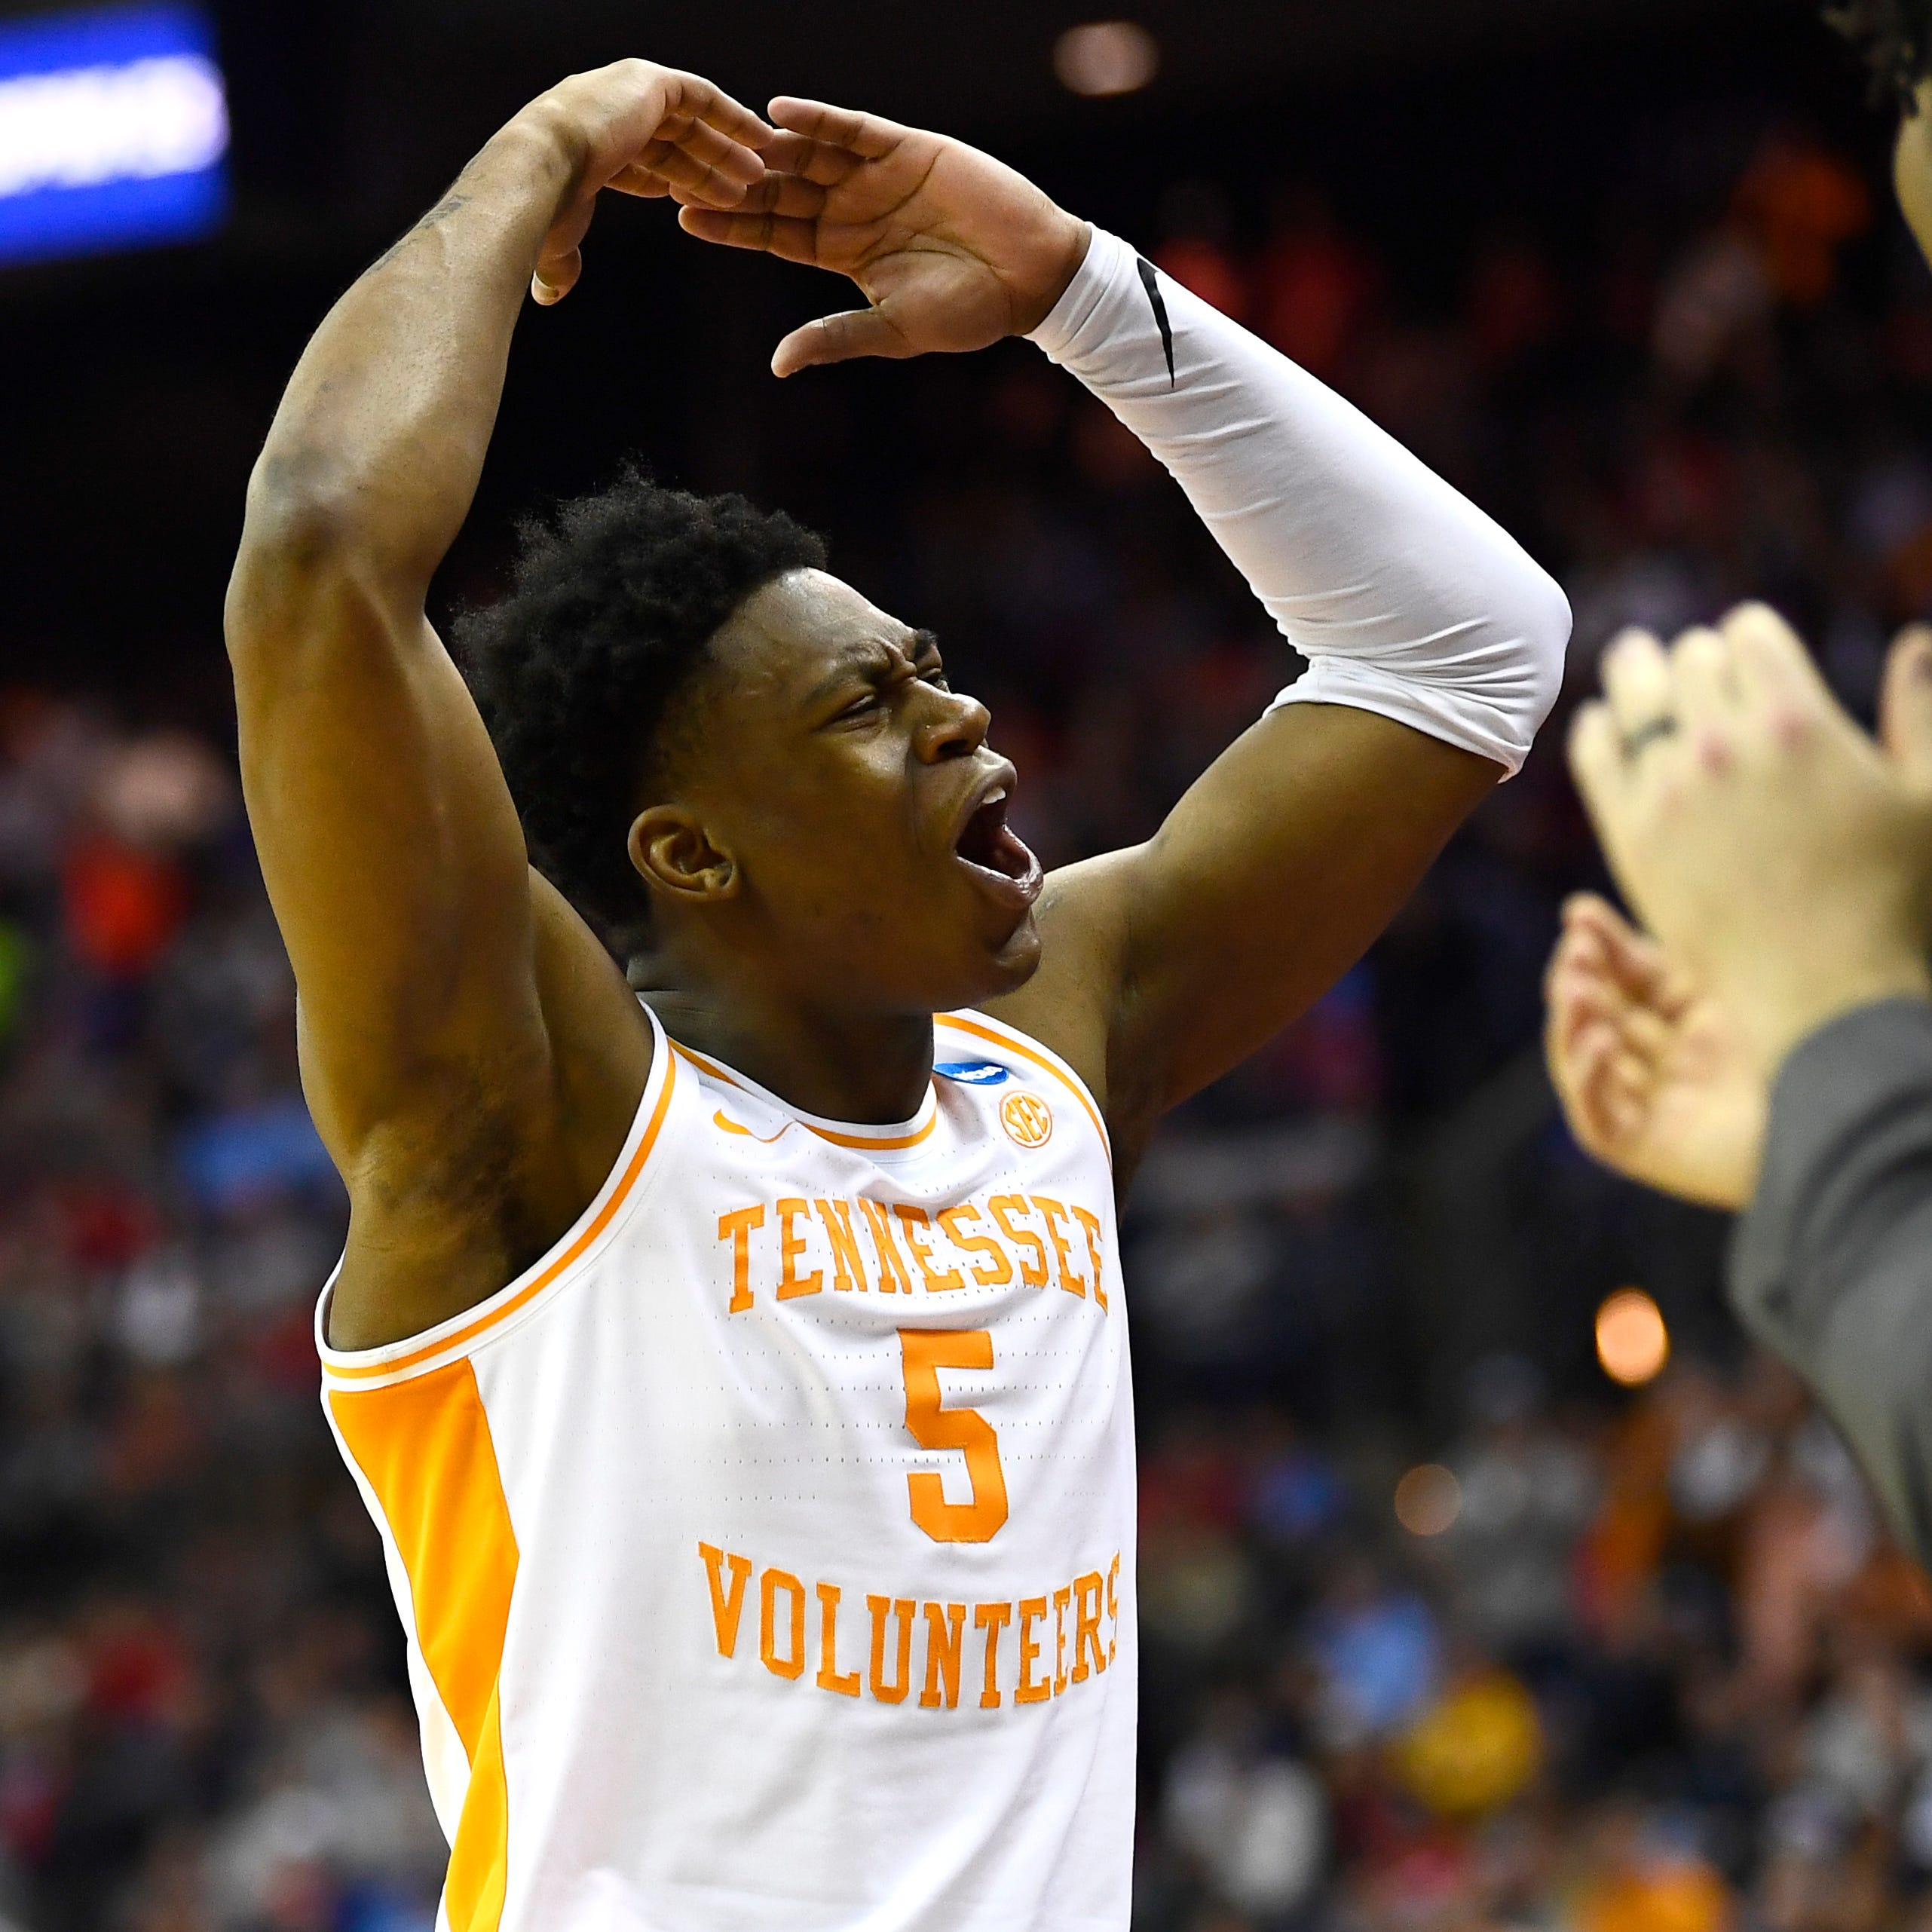 Tennessee basketball's Admiral Schofield took himself out of game to help beat Iowa